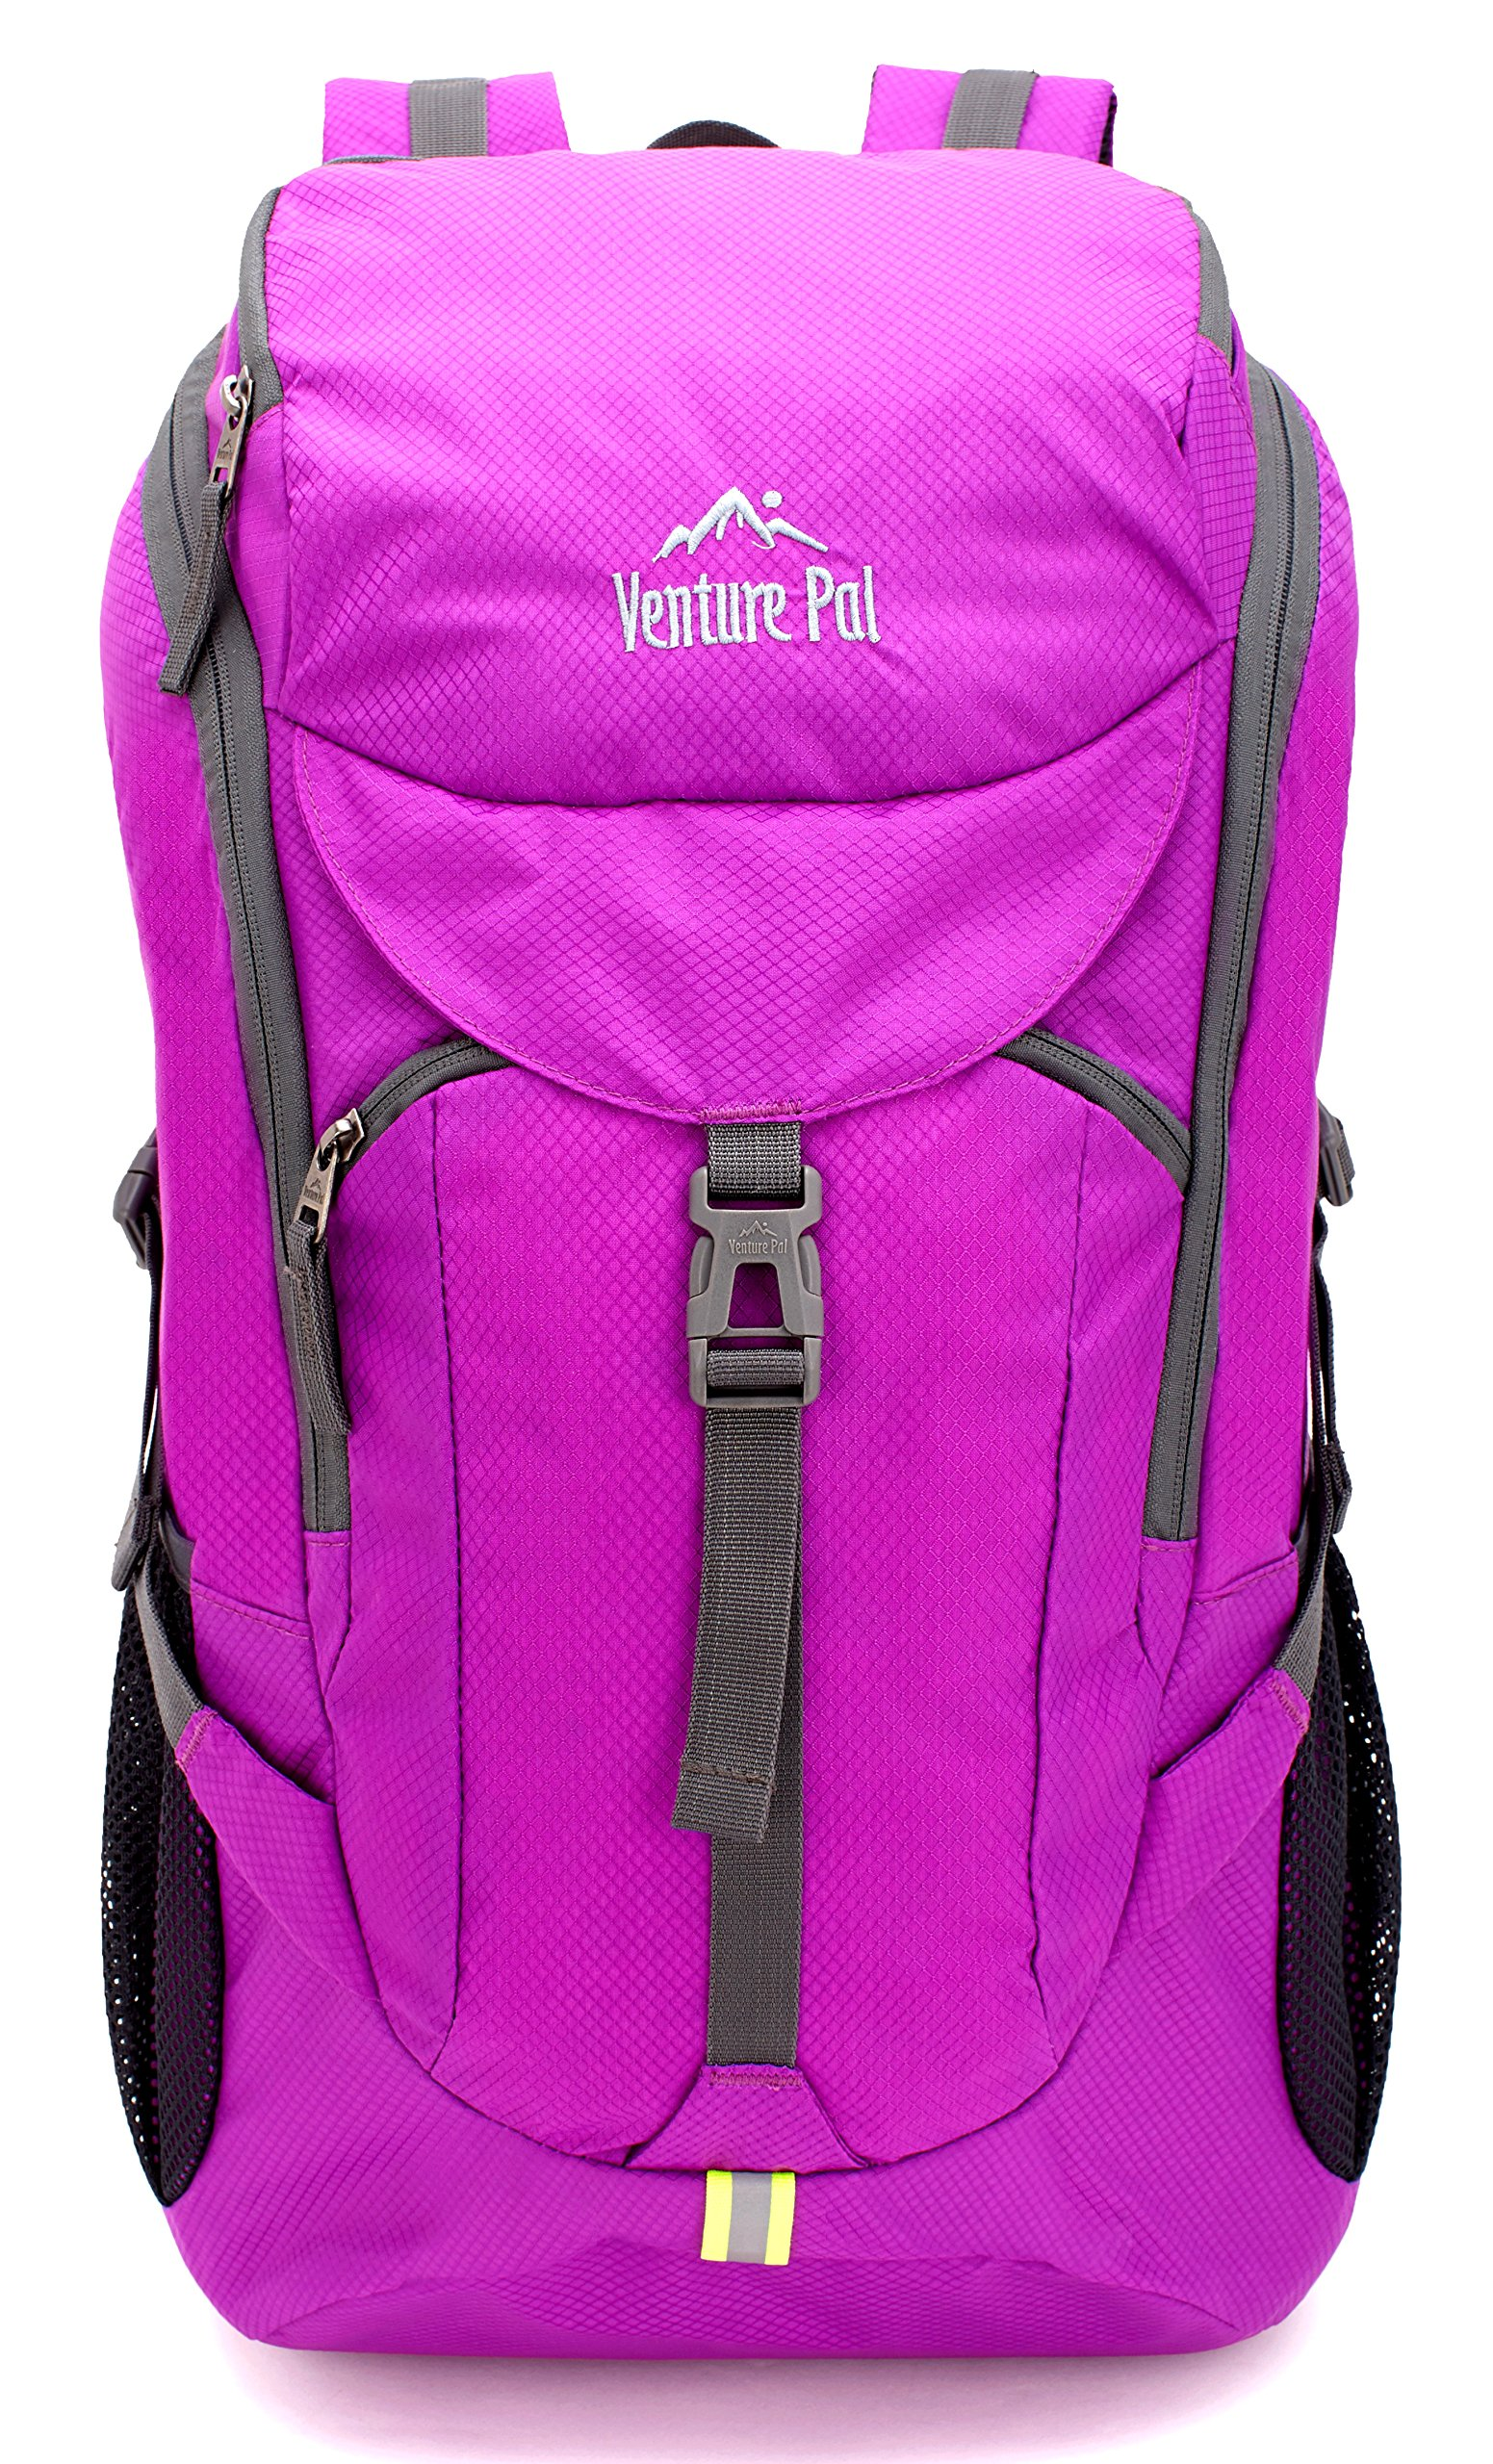 Venture Pal Hiking Backpack - Packable Durable Lightweight Travel Backpack Daypack for Women Men(purple)